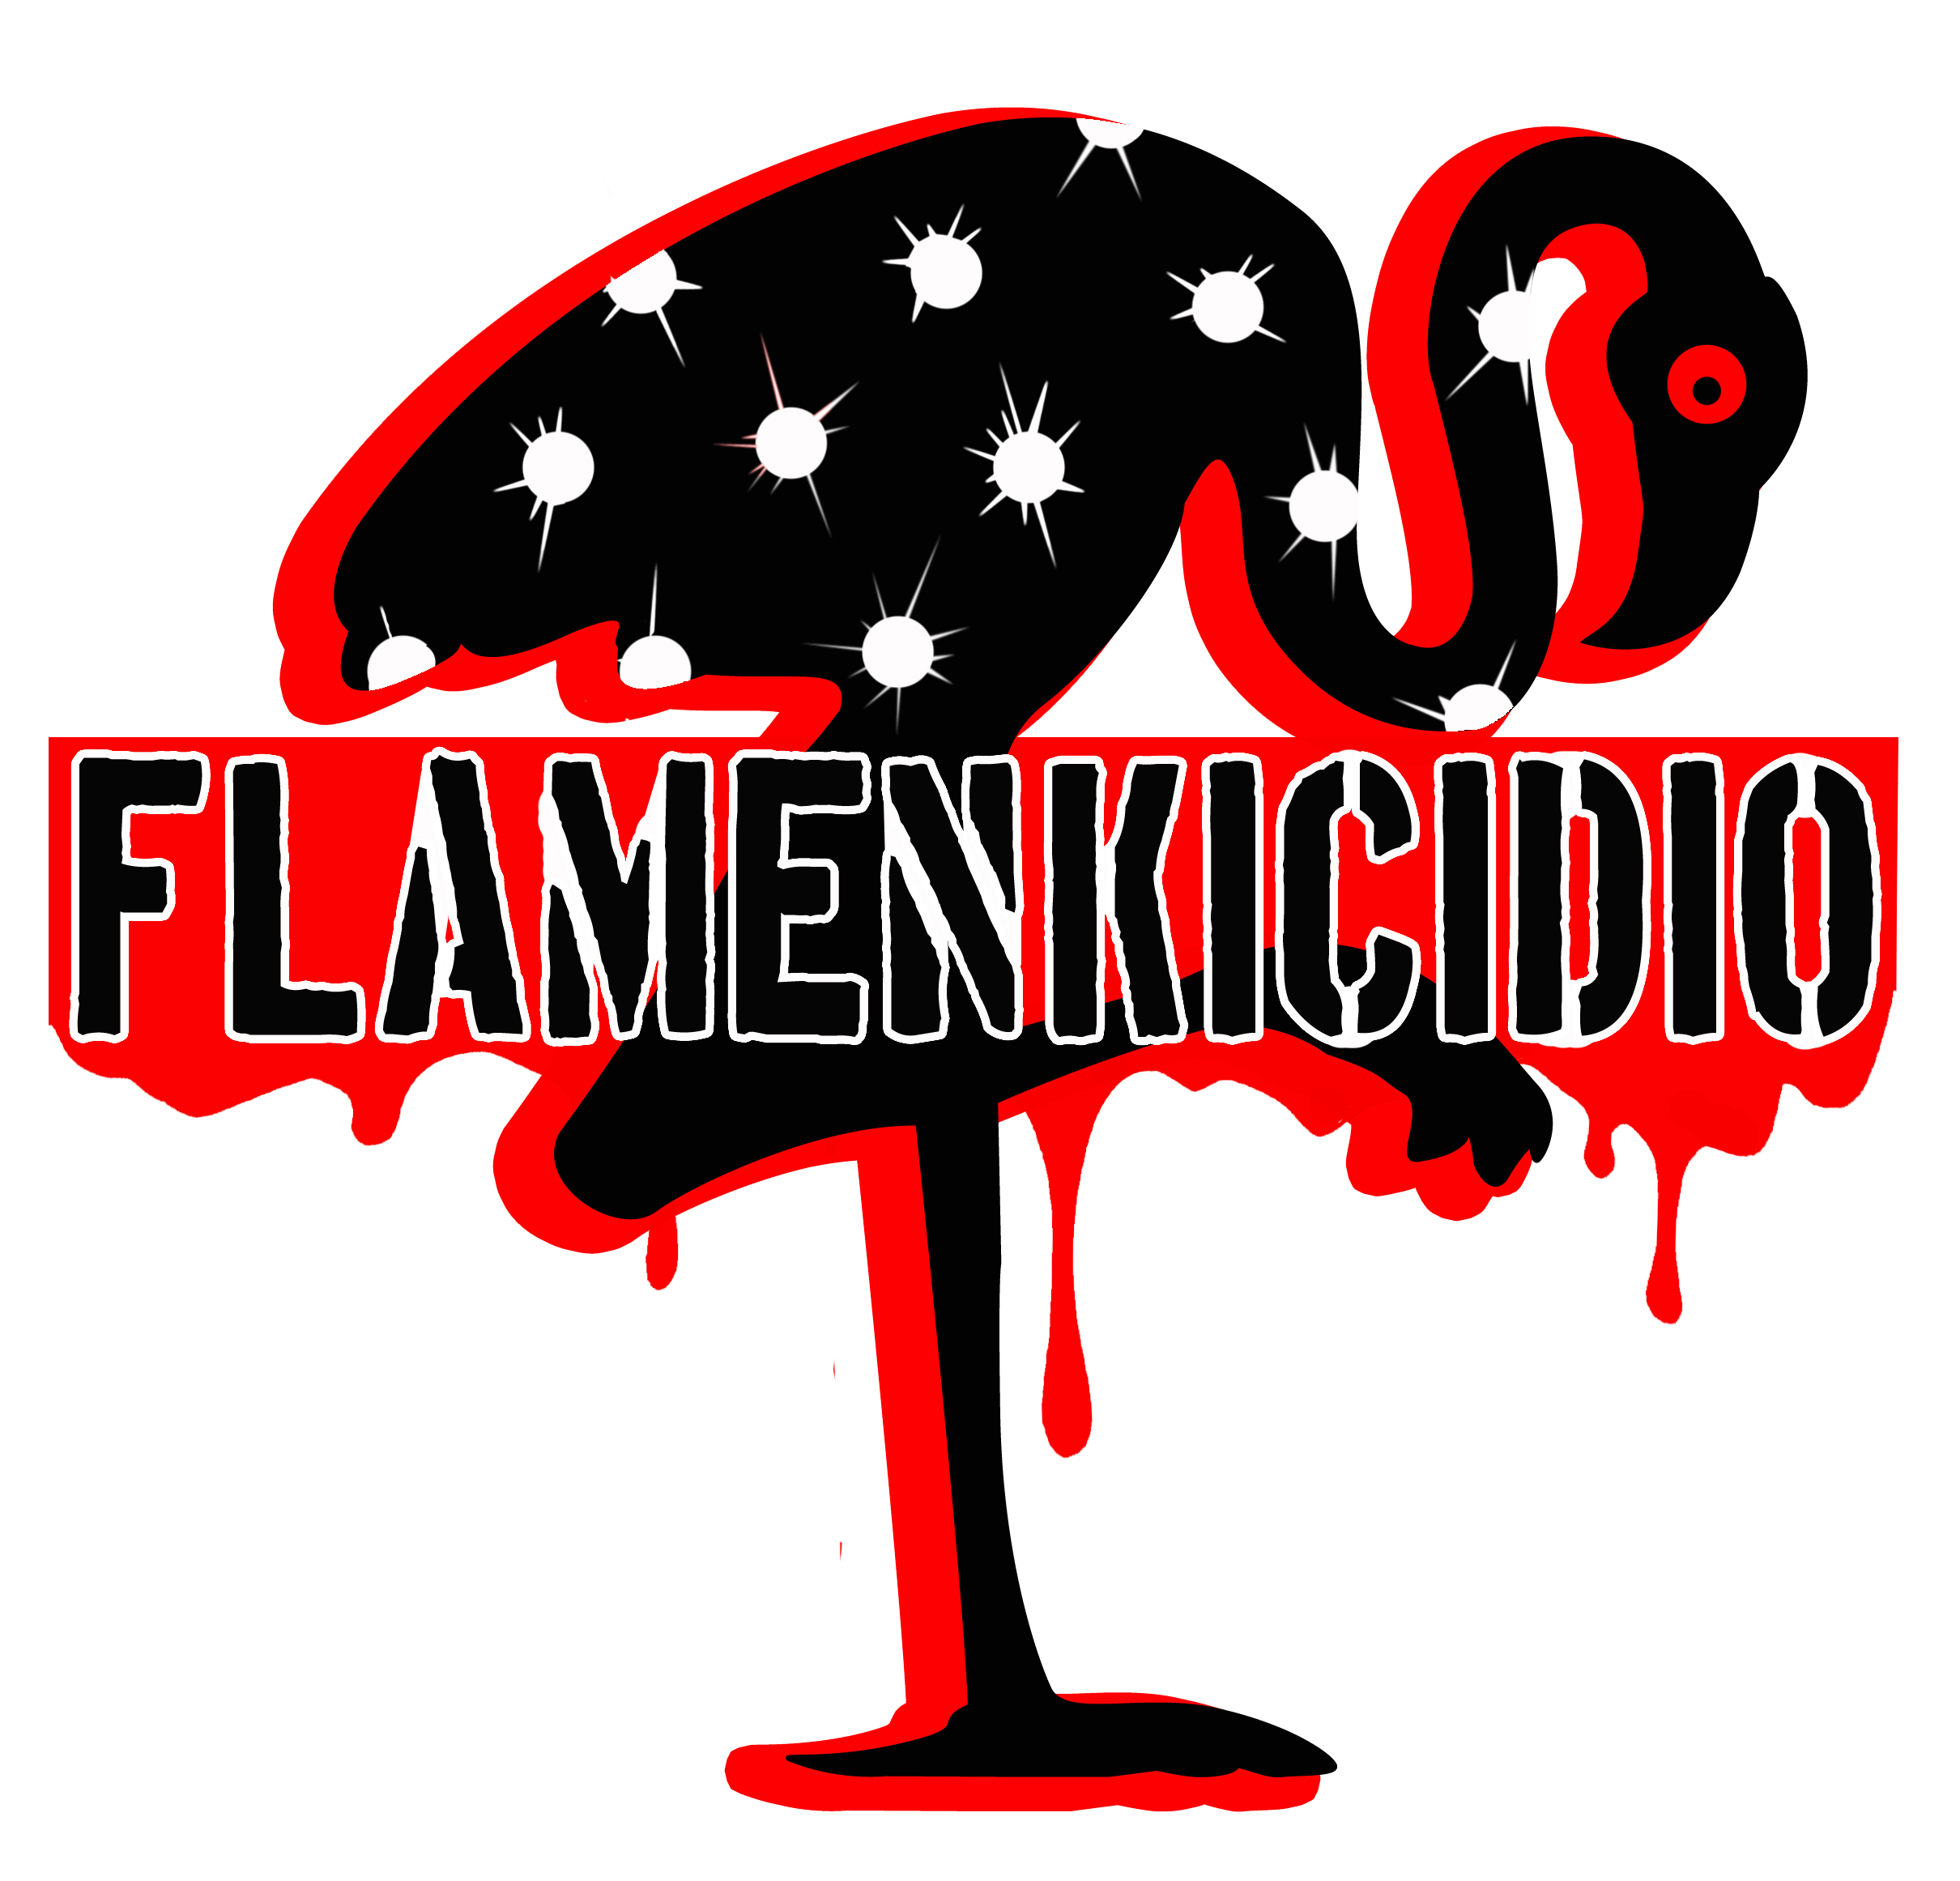 22-flamenkicidio logo final